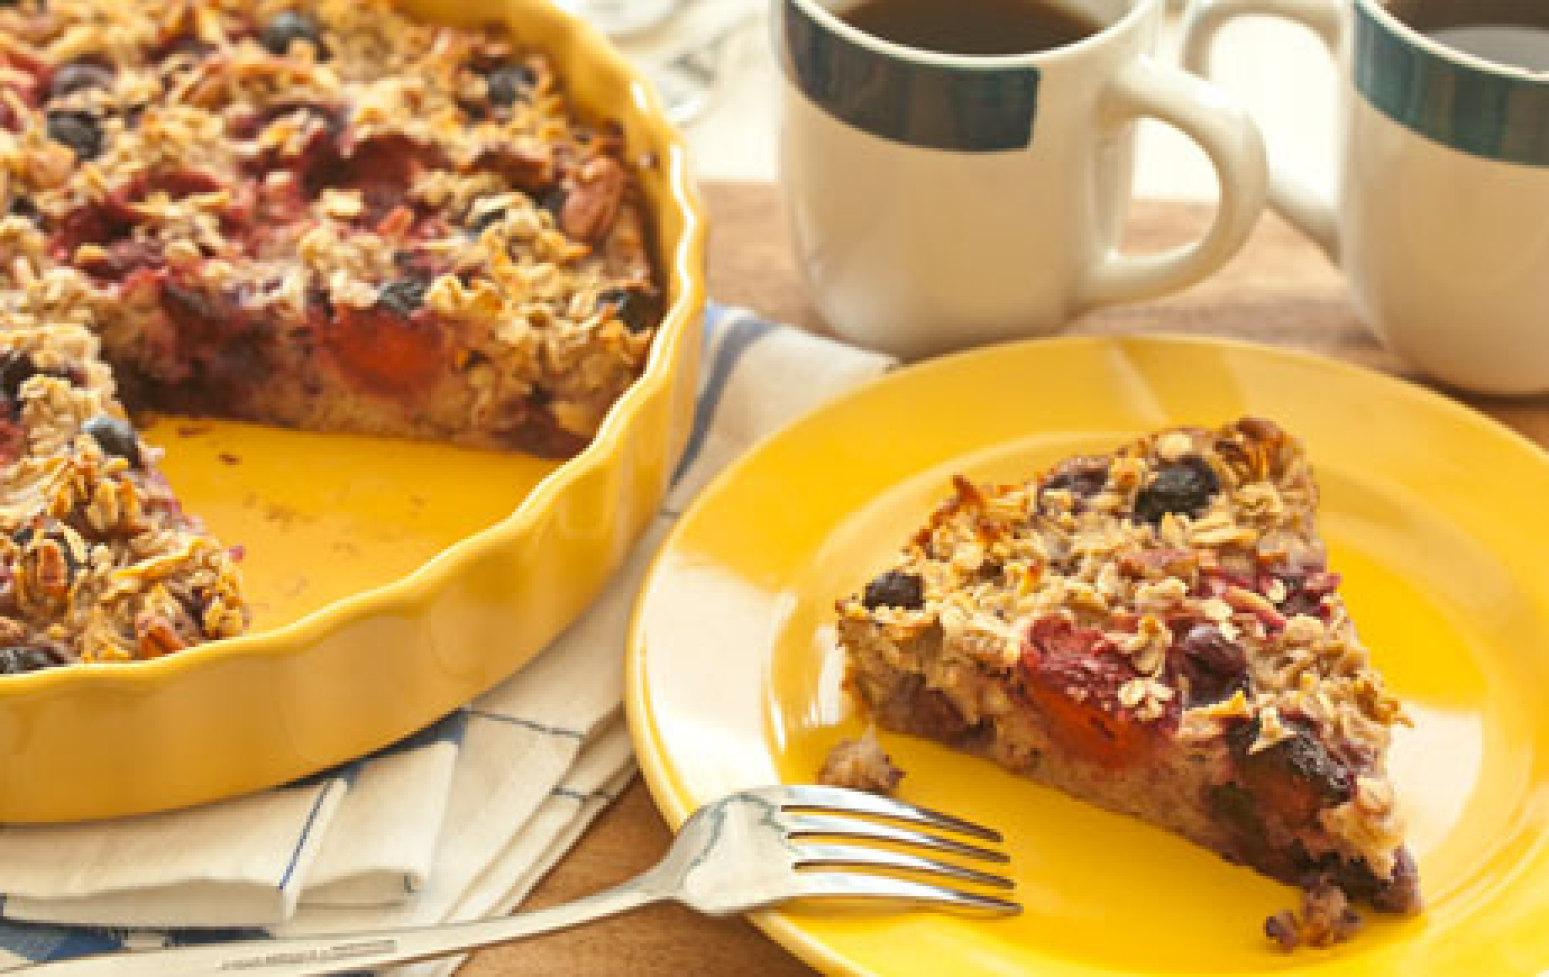 Apple-Berry Baked Oatmeal Recipe